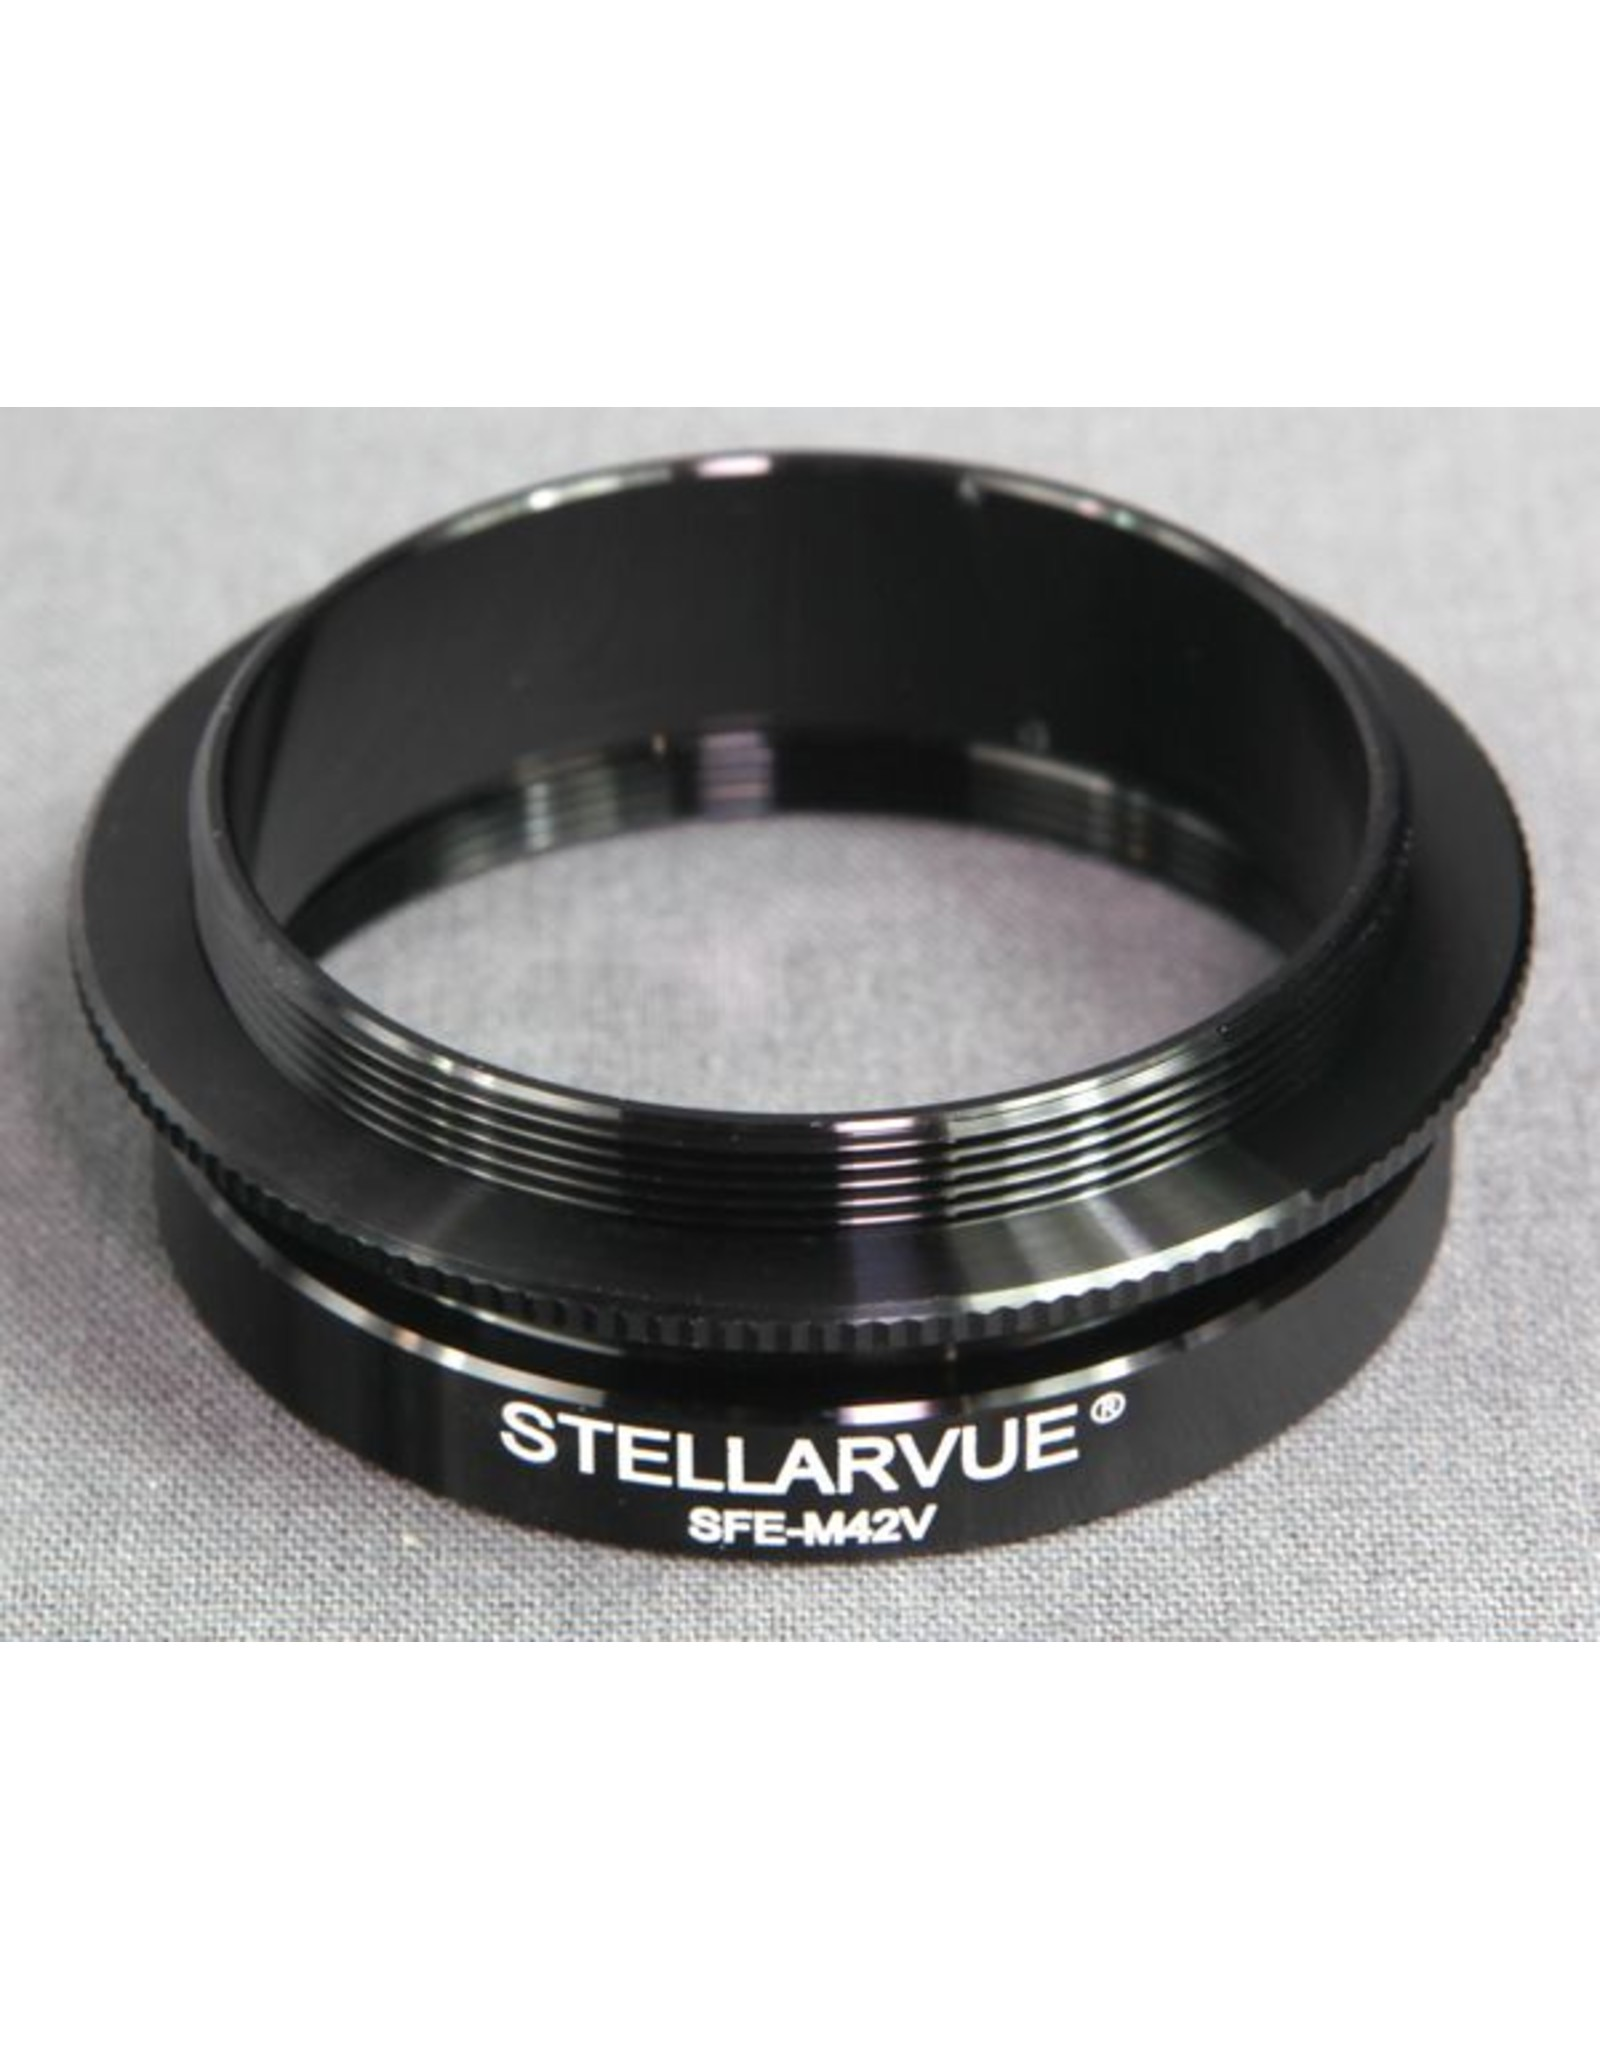 Stellarvue Stellarvue 42mm Variable Extension Tube  8 - 12 mm Length